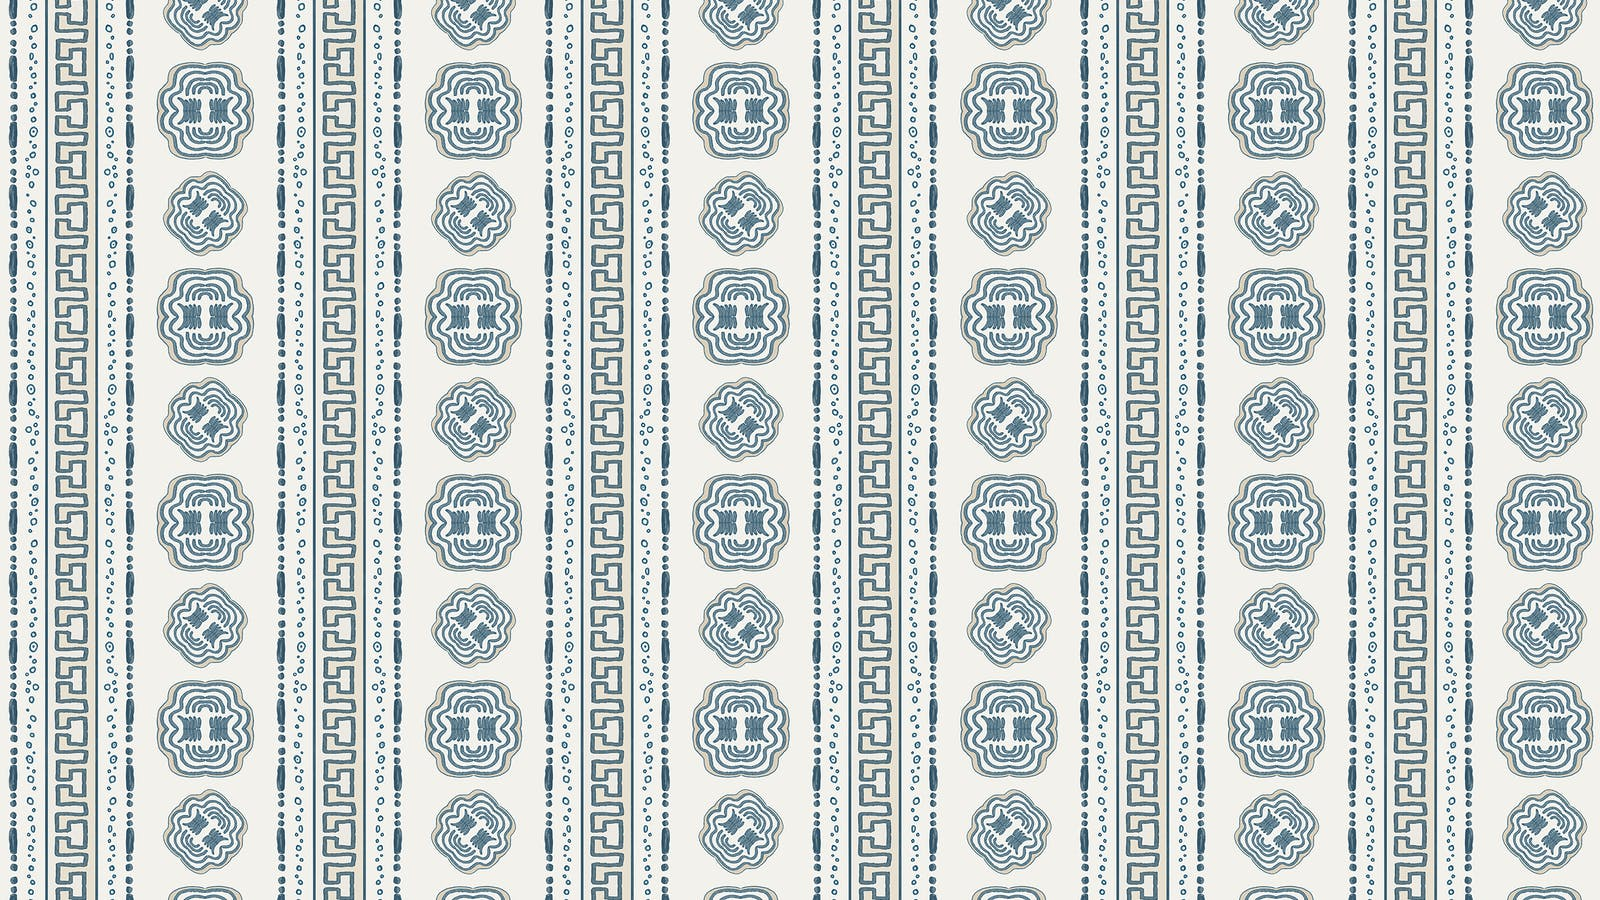 Lick x Lottie McDowell Hestia 01 greek patterened wallpaper